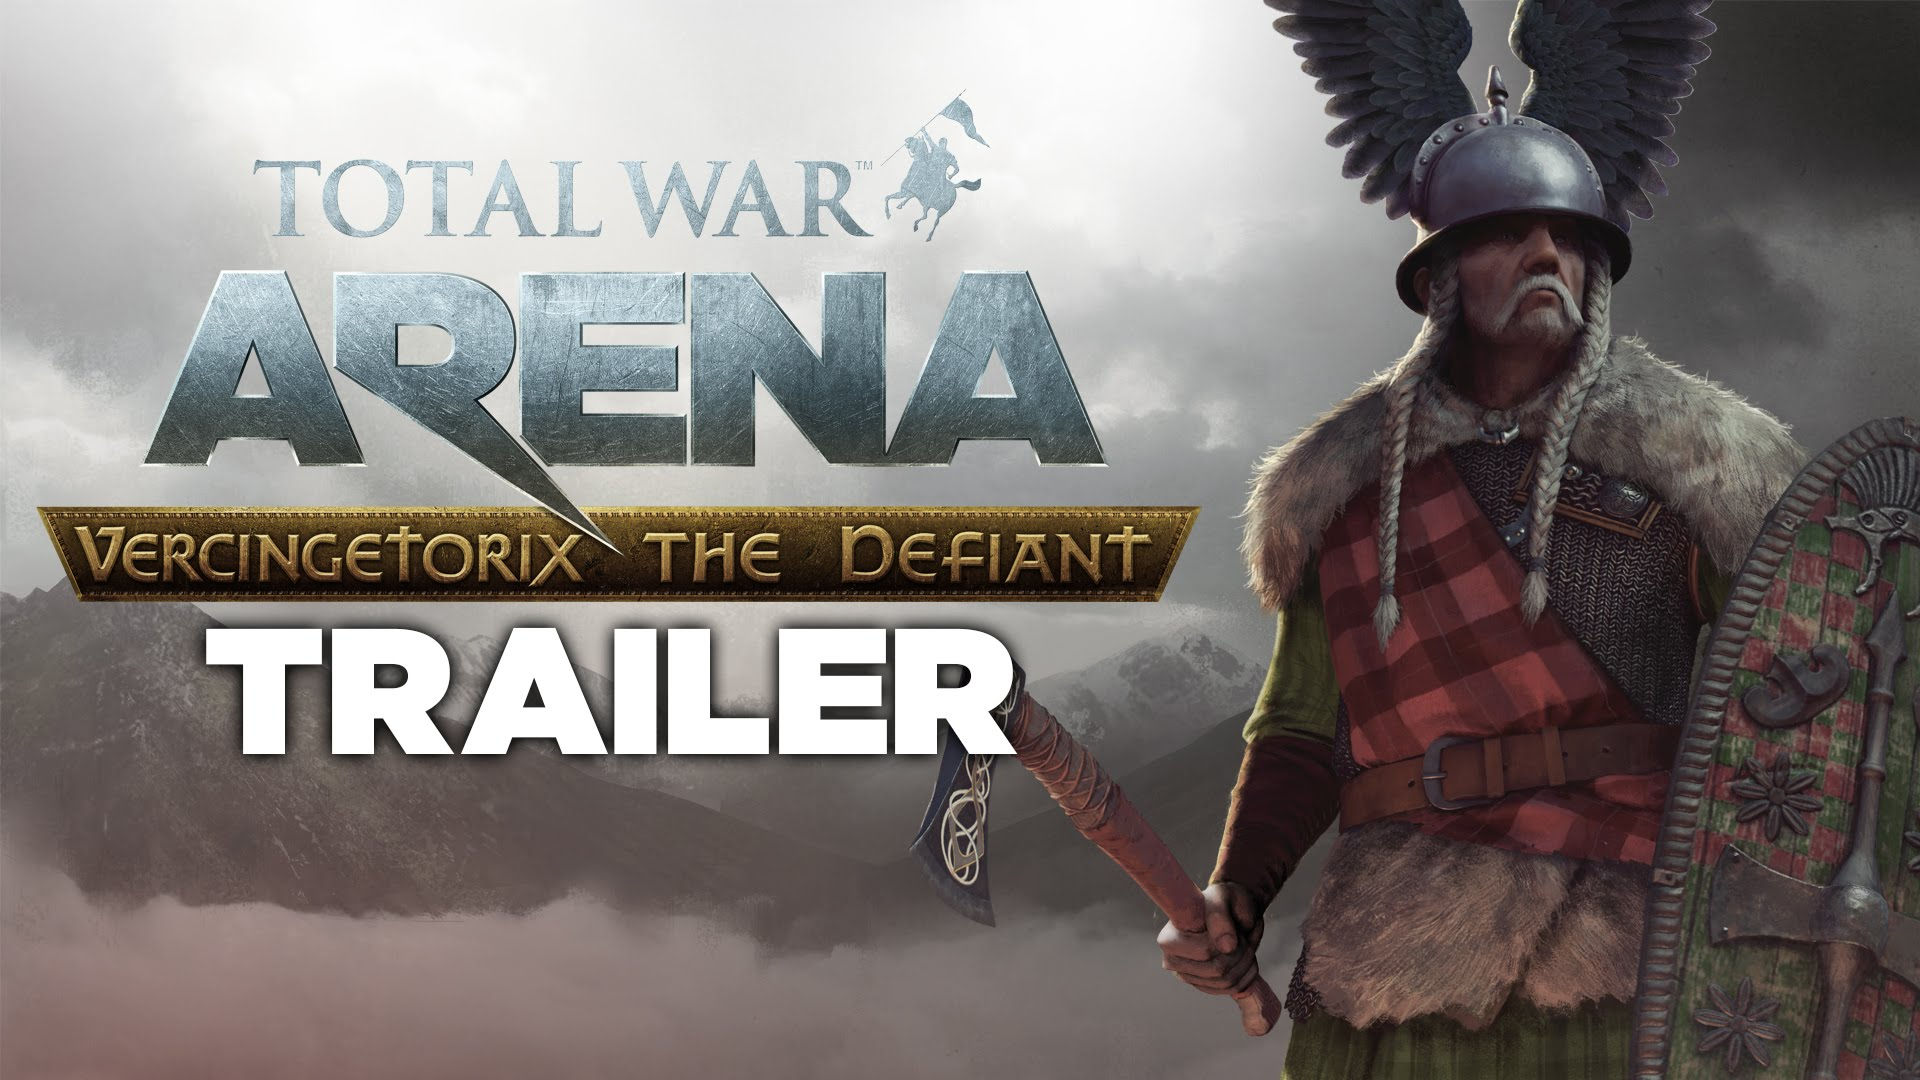 Total War: ARENA - Vercingetorix The Defiant trailer